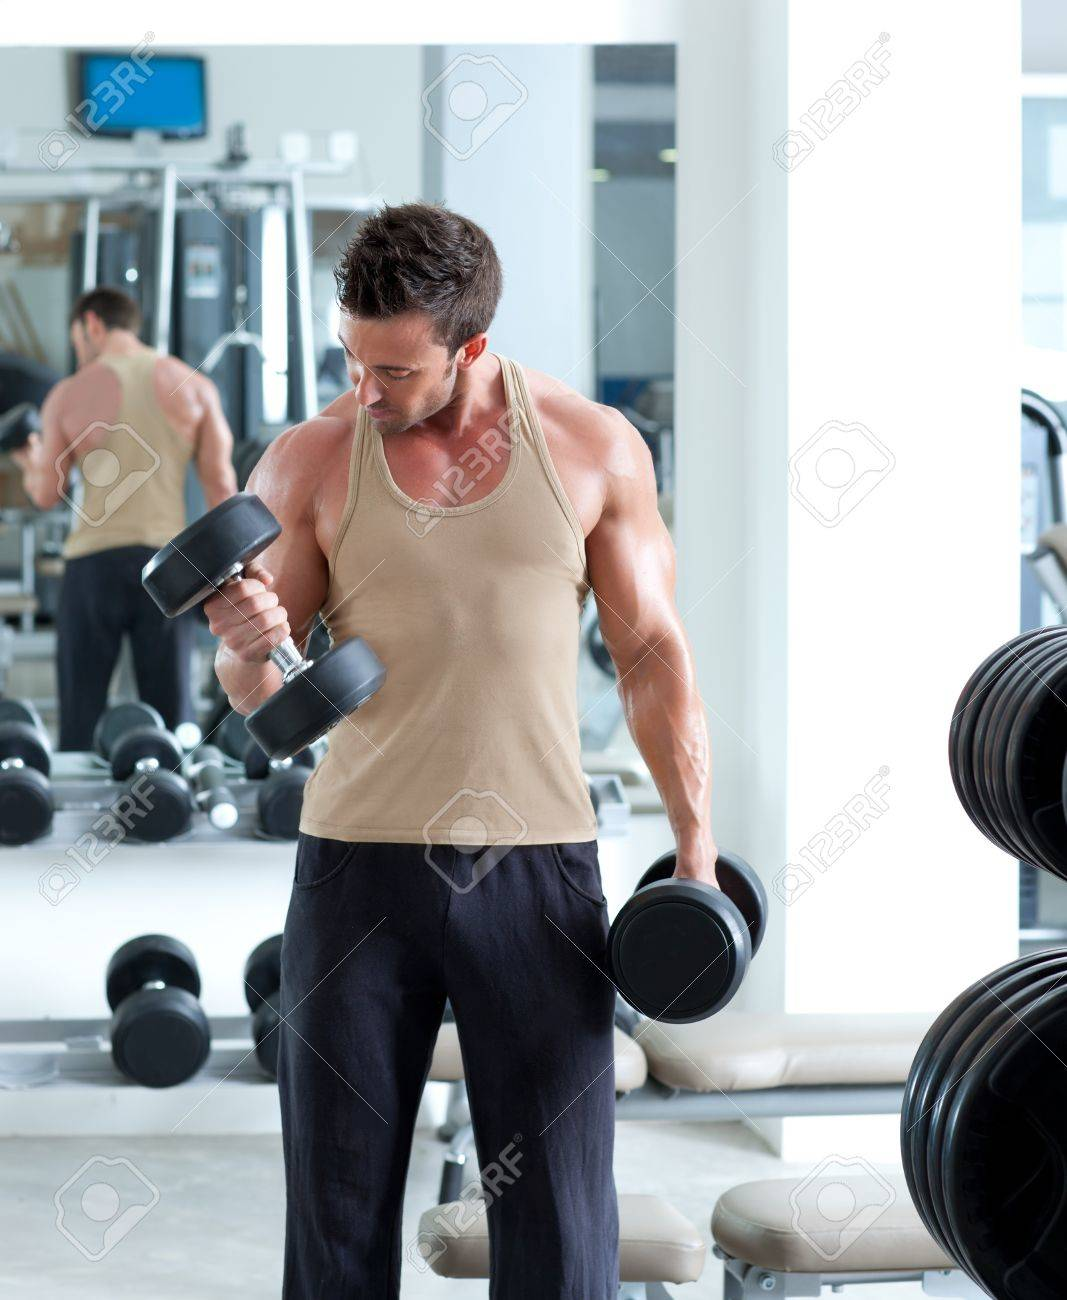 man with weight training equipment on sport gym club Stock Photo - 11982049